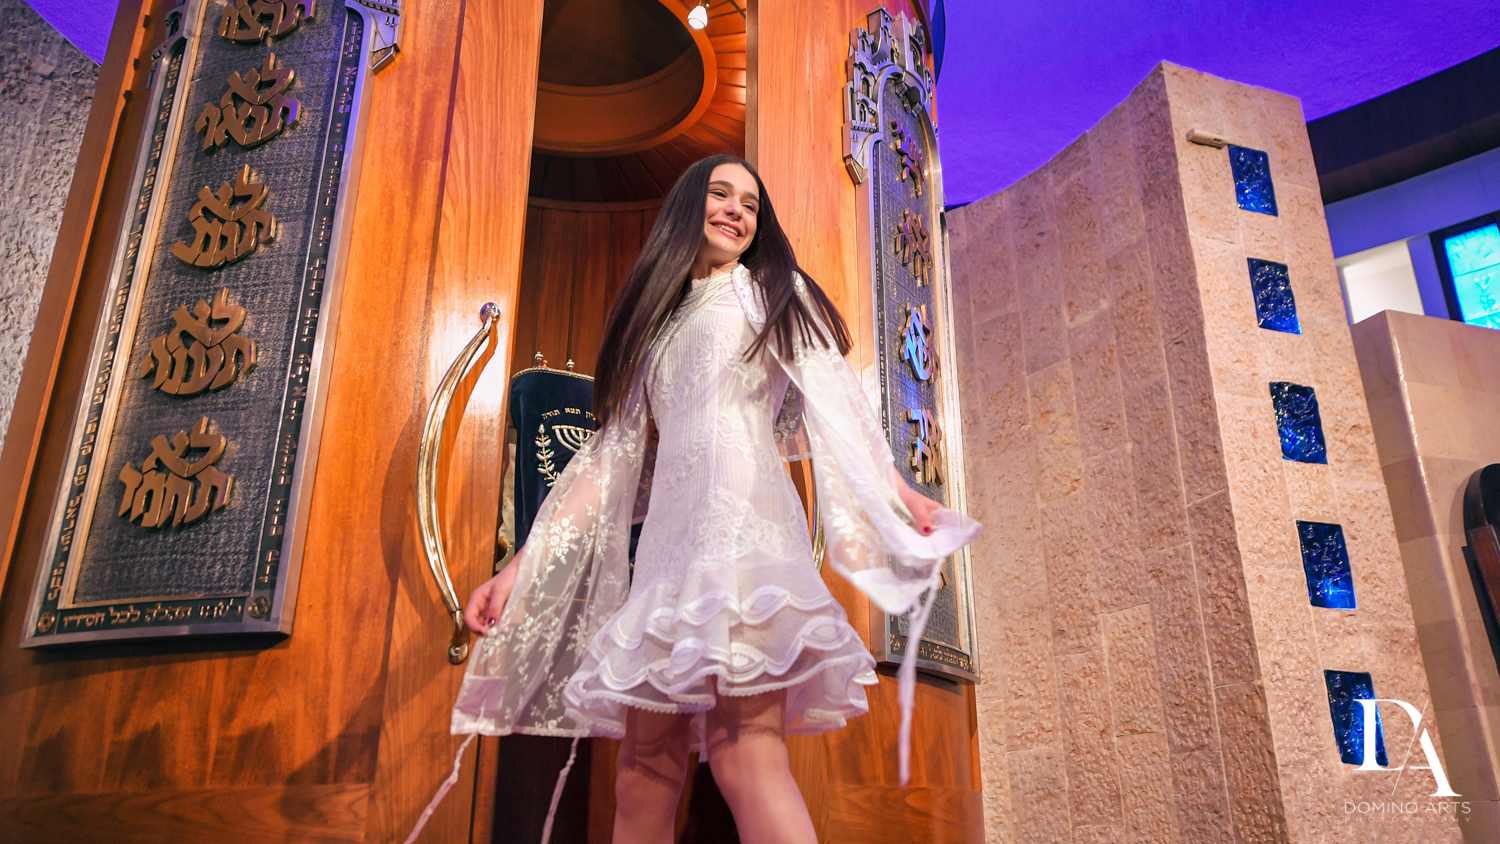 fun portrait at Luxury Celebrity Bat Mitzvah at Four Seasons Hotel Miami by Domino Arts Photography